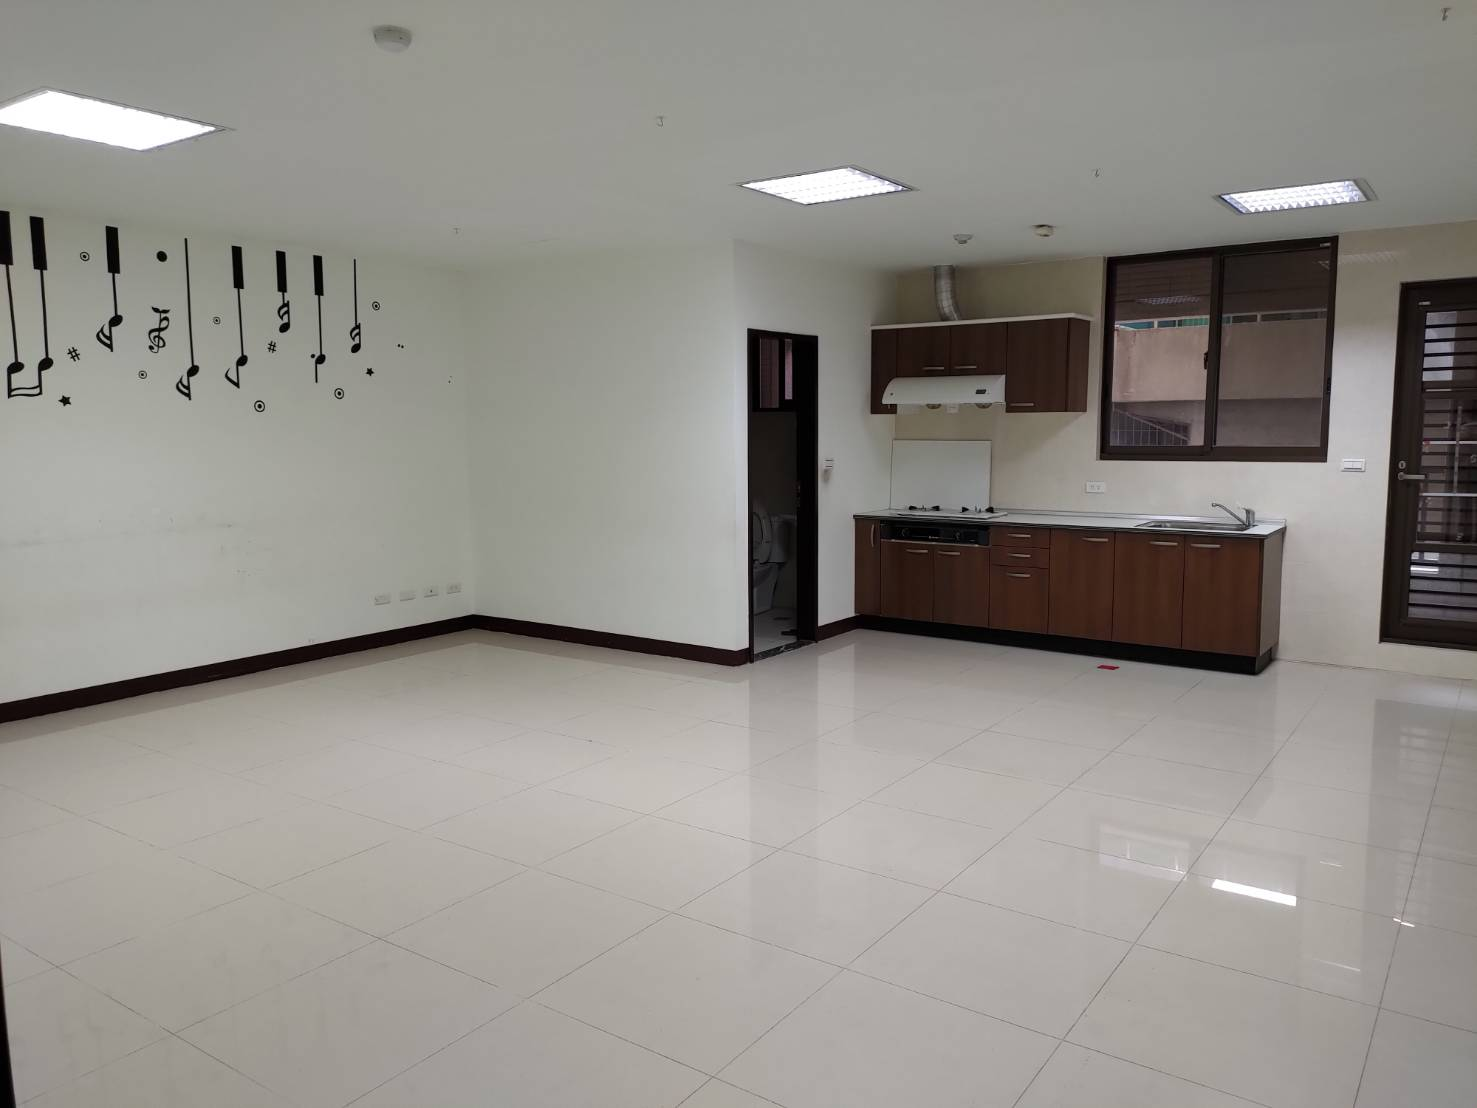 Teaching English and Living in Taiwan Apartments for One Family, Spacious space rent for tutors online office image